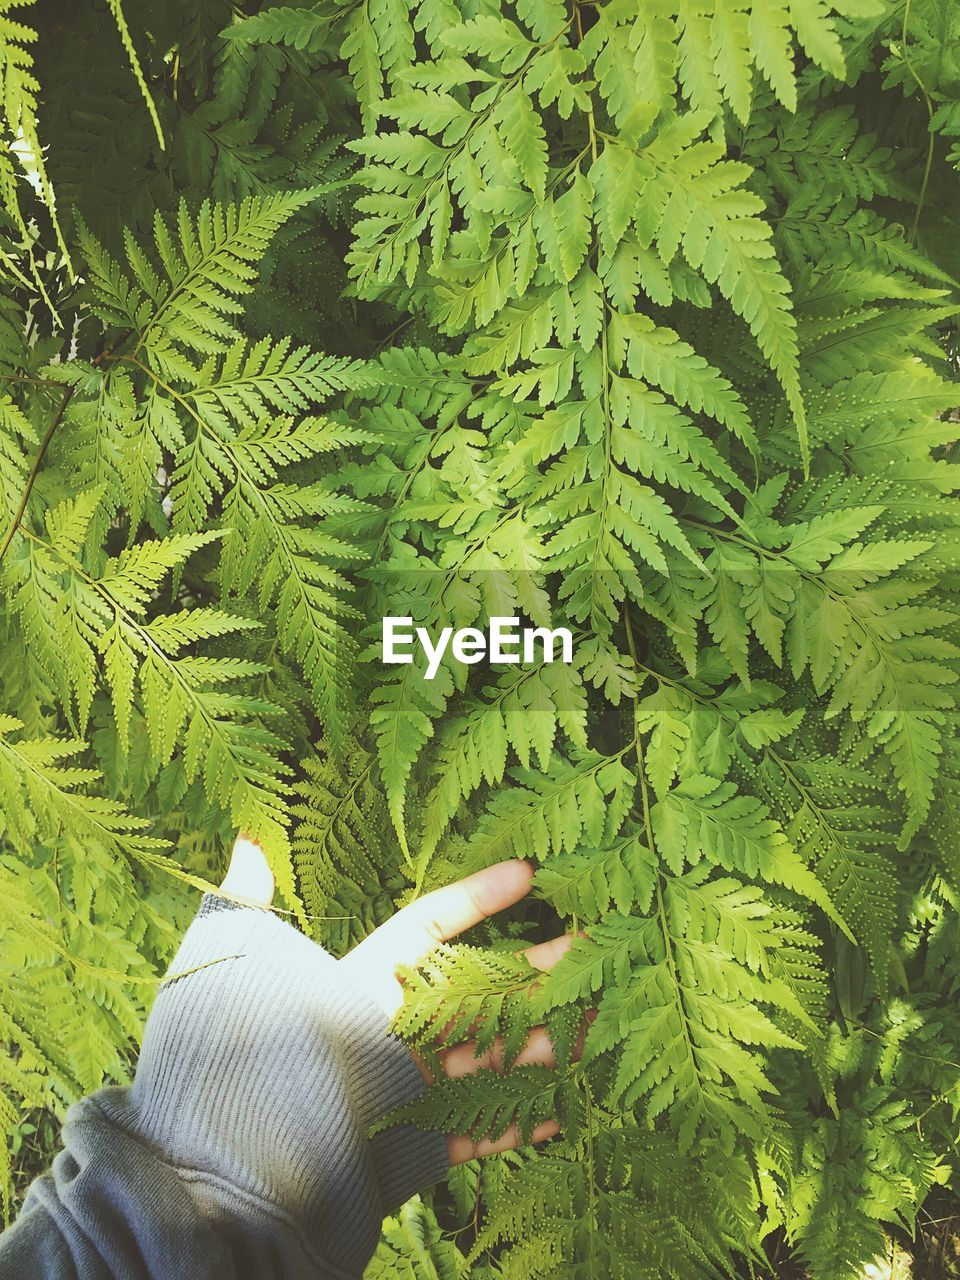 green color, plant, leaf, human hand, plant part, growth, hand, one person, real people, nature, holding, day, human body part, unrecognizable person, outdoors, fern, tree, close-up, beauty in nature, finger, leaves, human limb